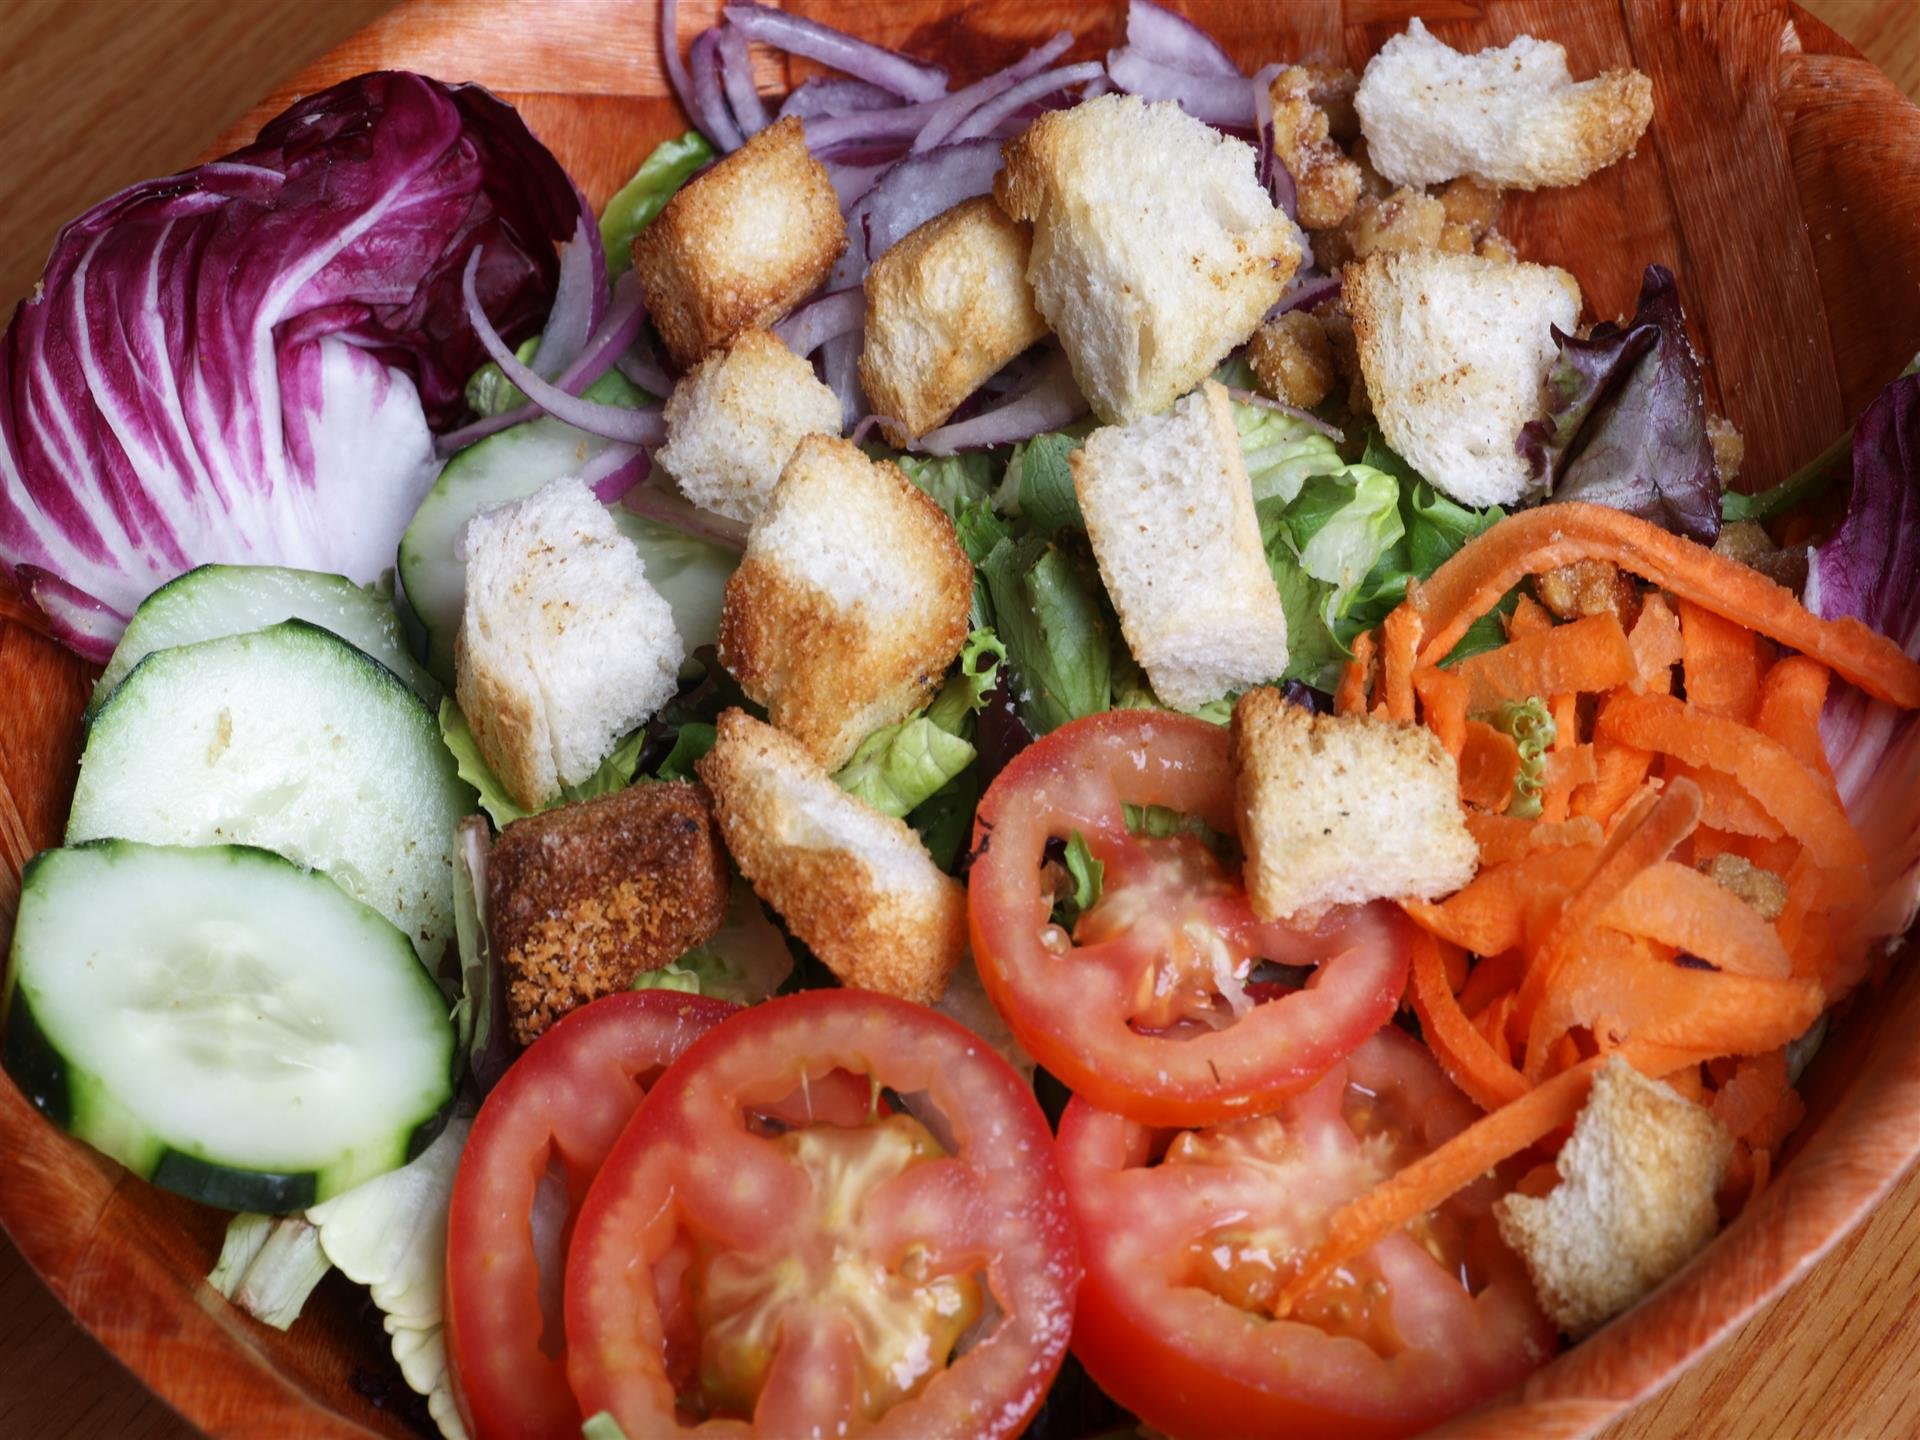 salad with lettuce, tomato, carrots, cucumber and croutons